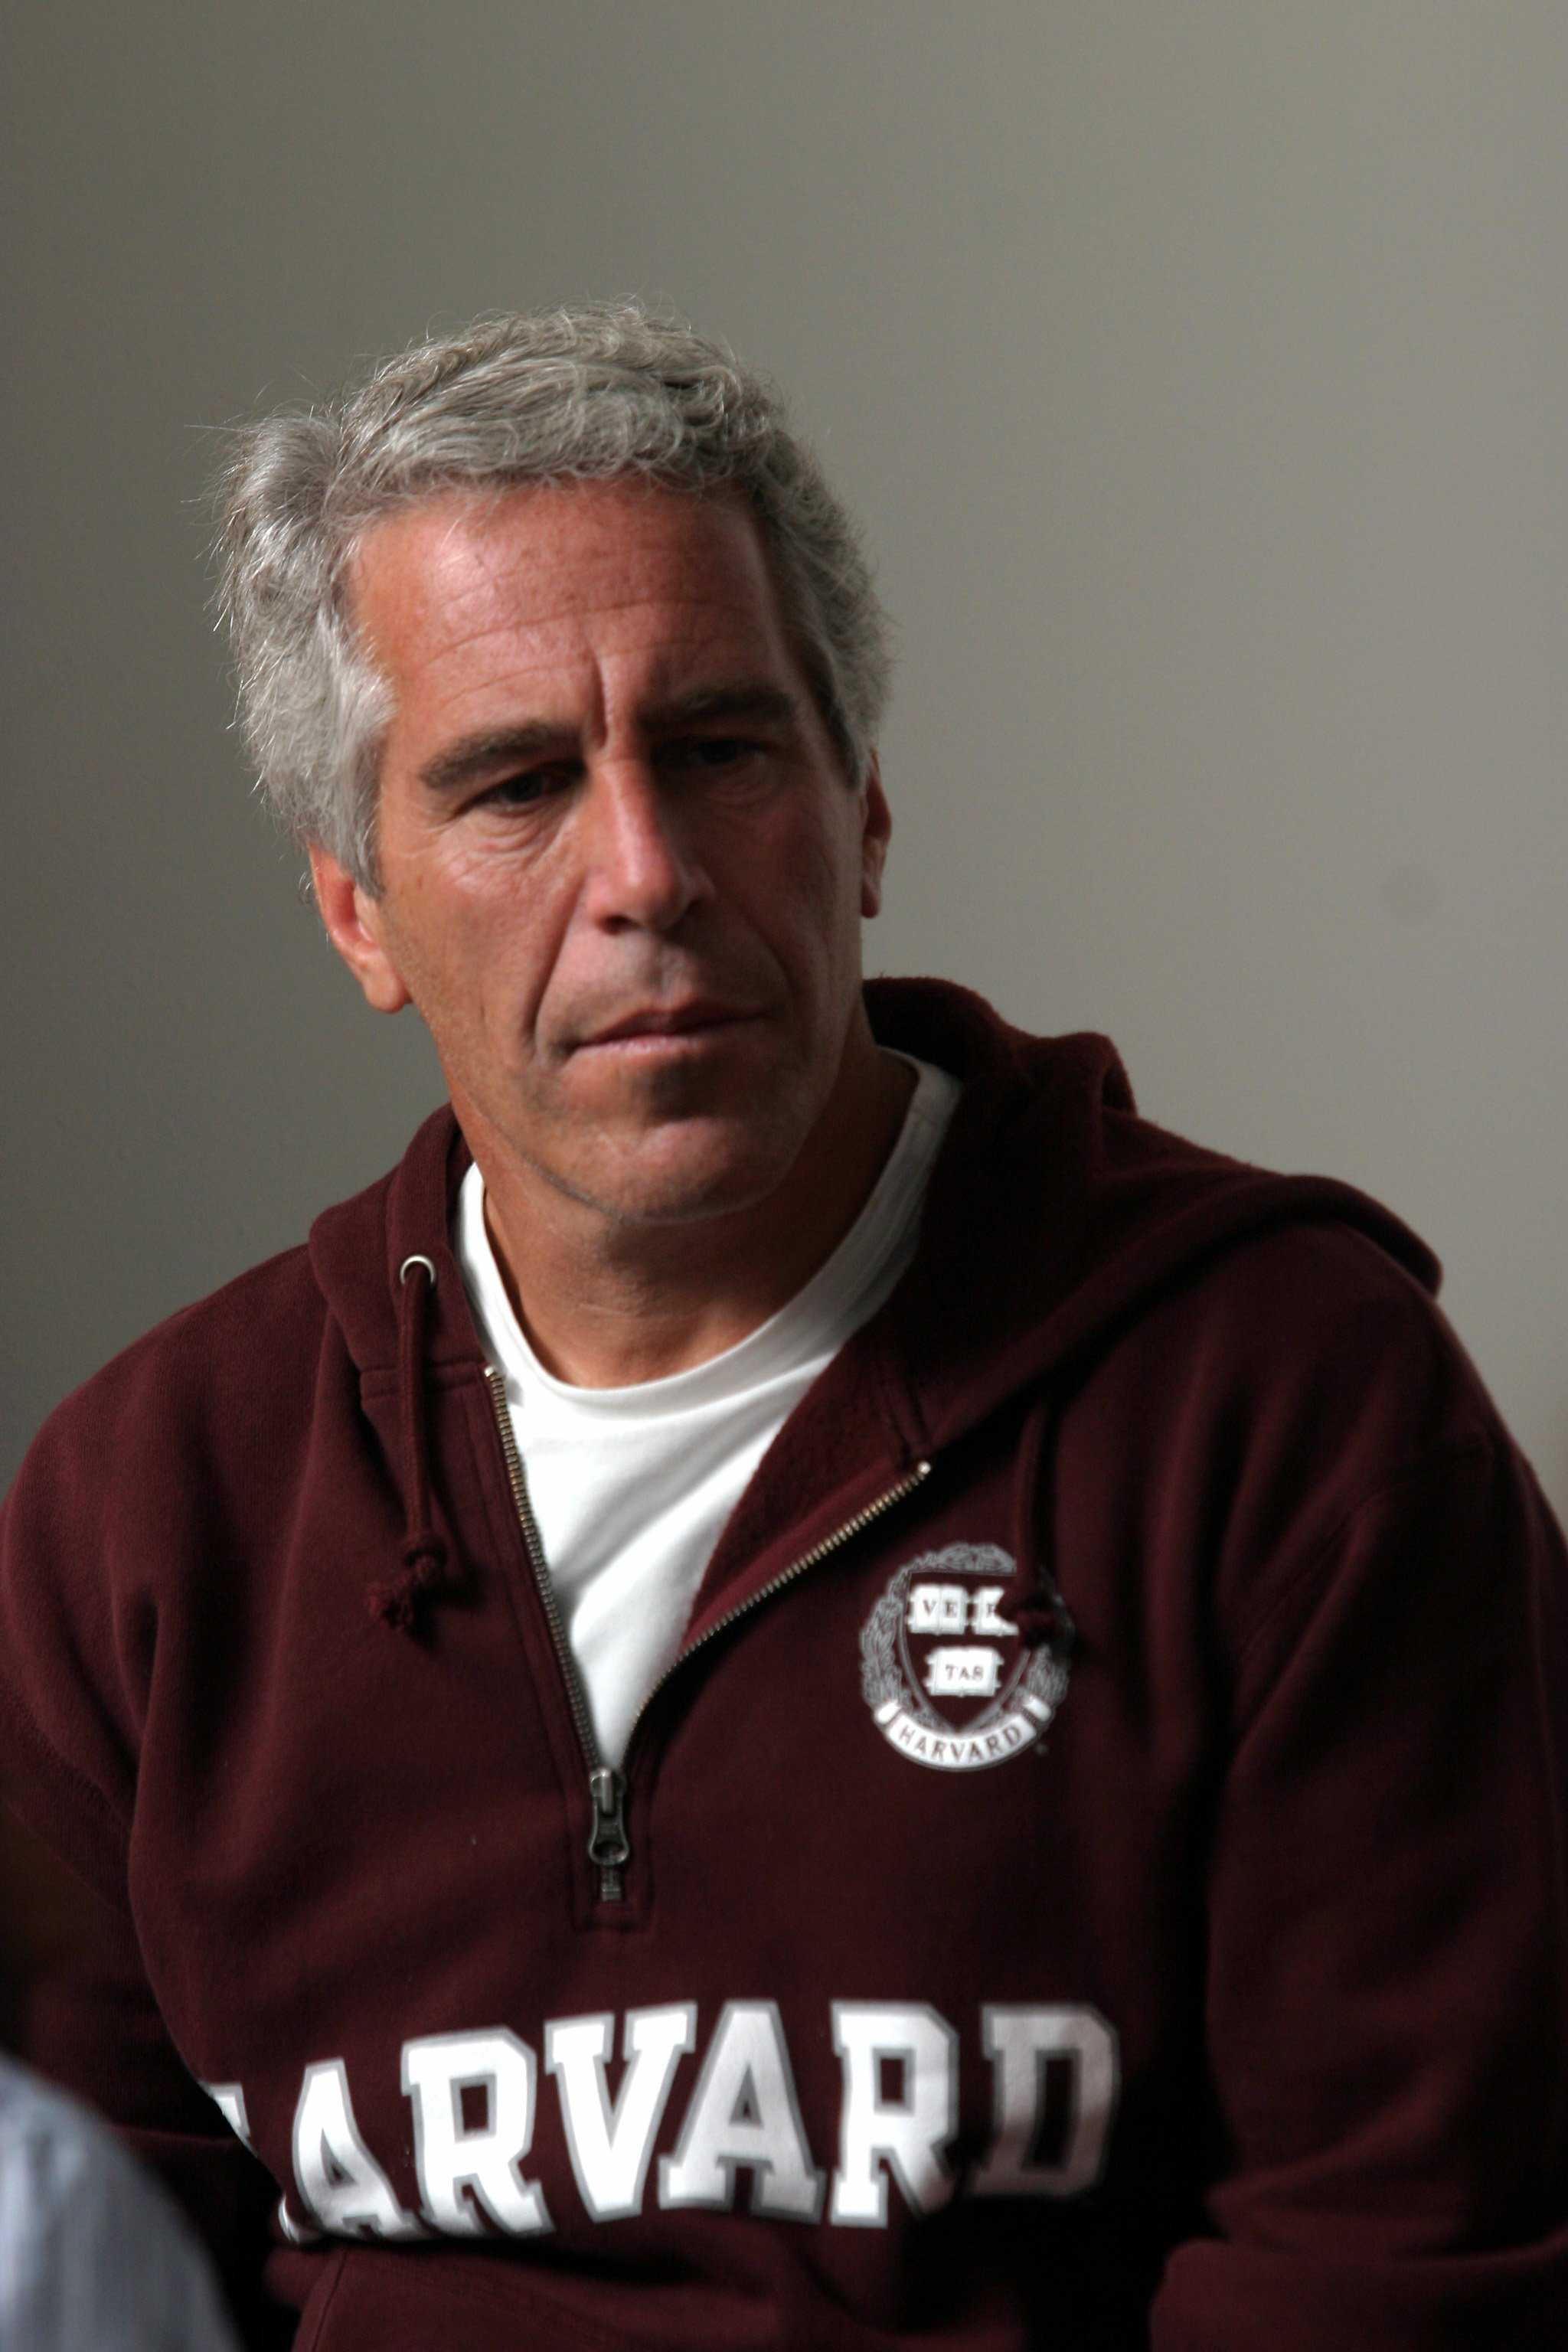 The mediators hired to work on Jeffrey Epstein's estate also handled the 9/11 victims fund and Catholic Church abuse scandal